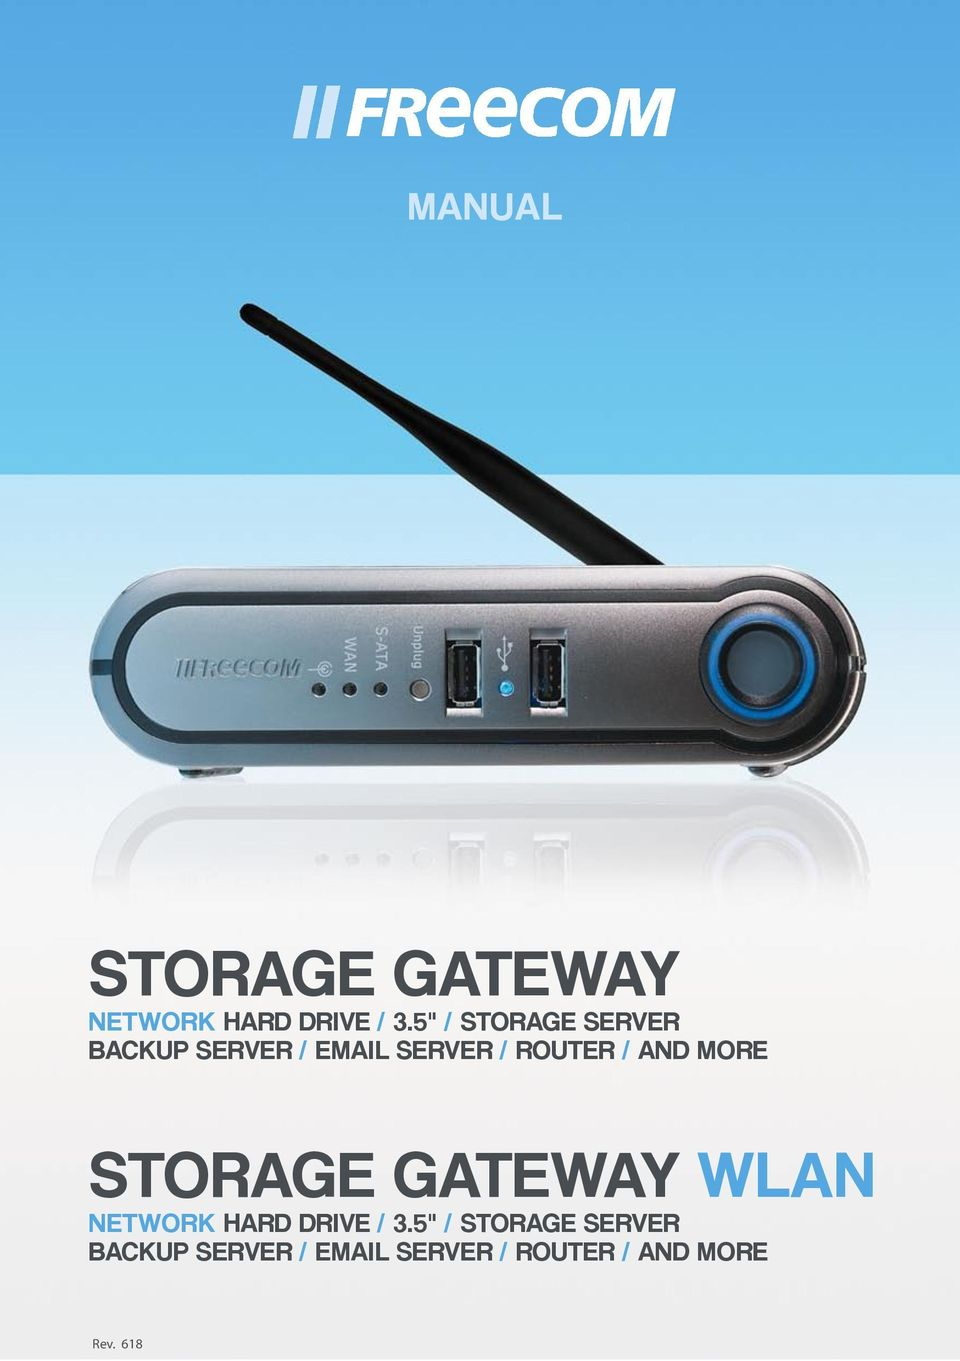 / AND MORE STORAGE GATEWAY WLAN NETWORK HARD DRIVE / 3.